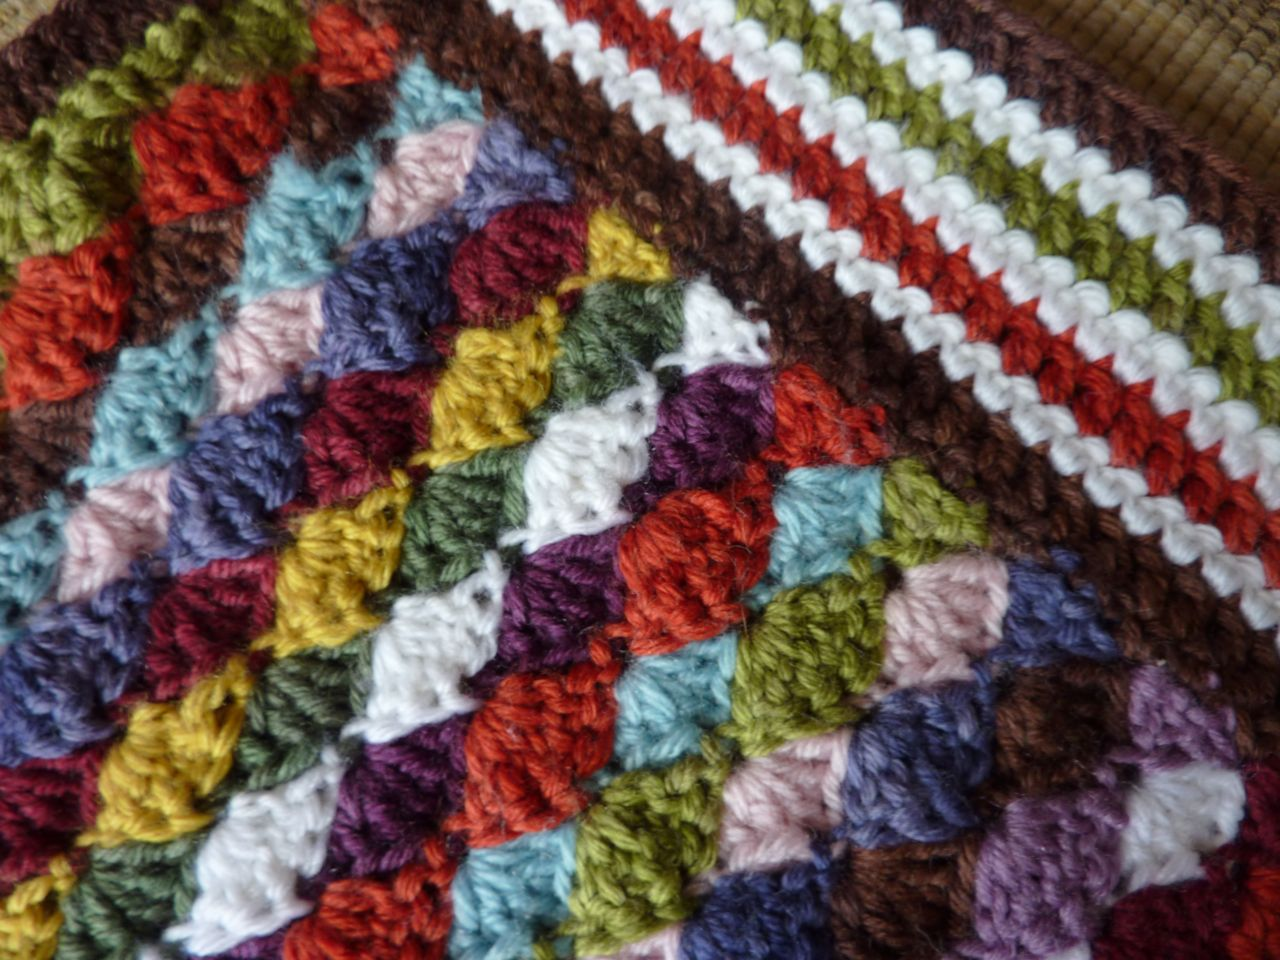 Crocheting Videos : CROCHET EASY BLANKET Crochet For Beginners